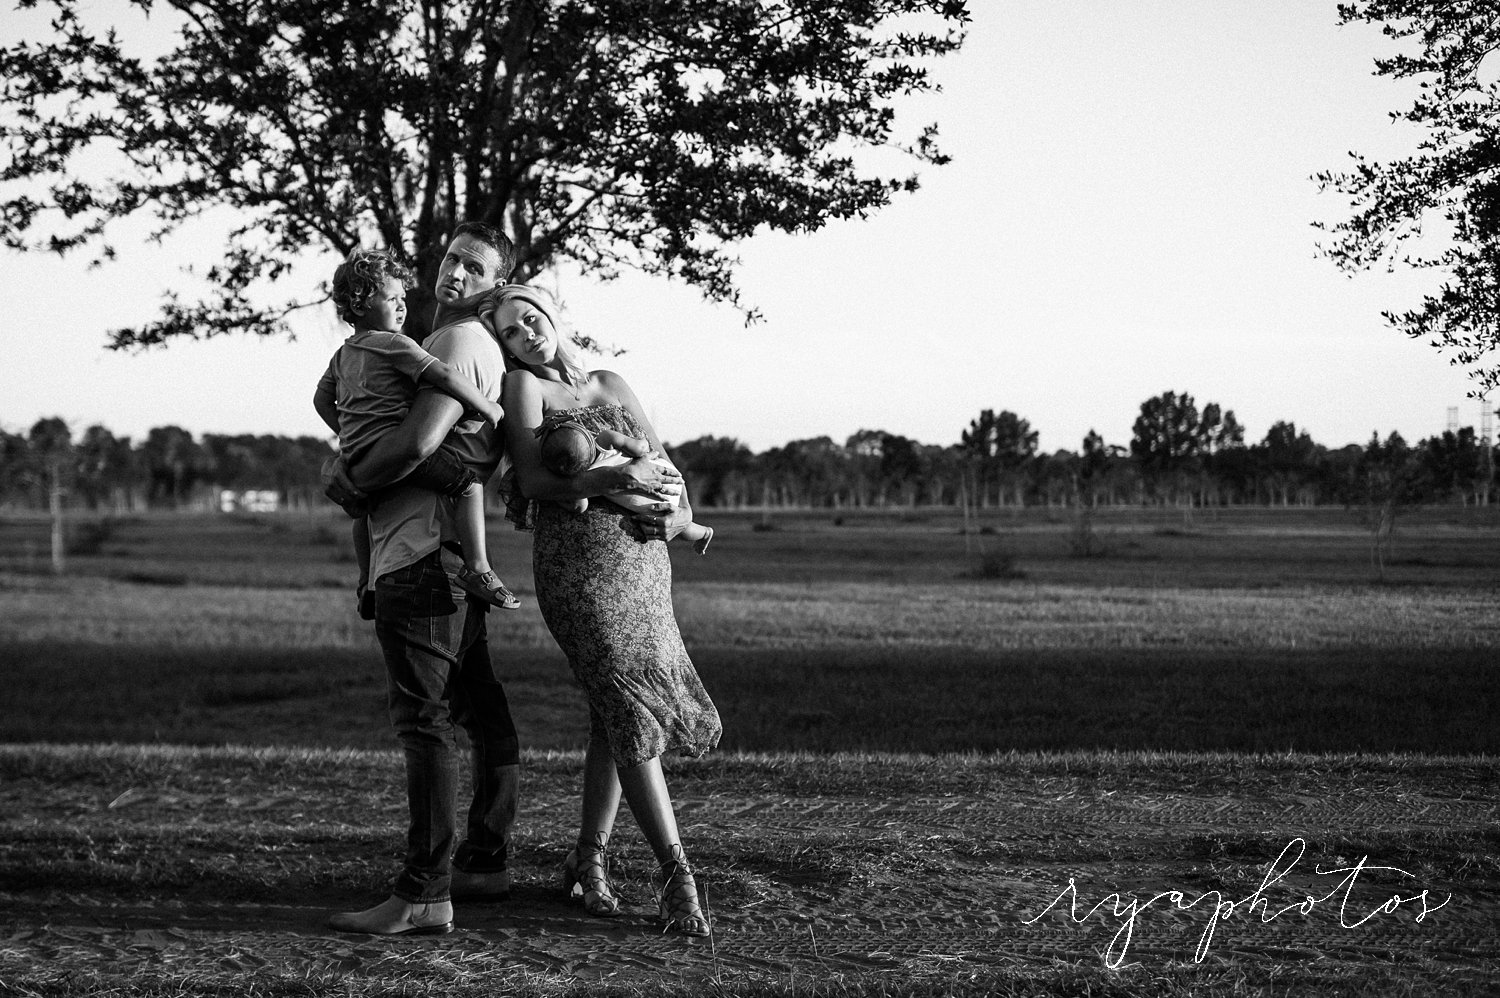 black and white family photo session, Ryan Lochte, Ryan Lochte family, Jacksonville, Florida, Ryaphotos